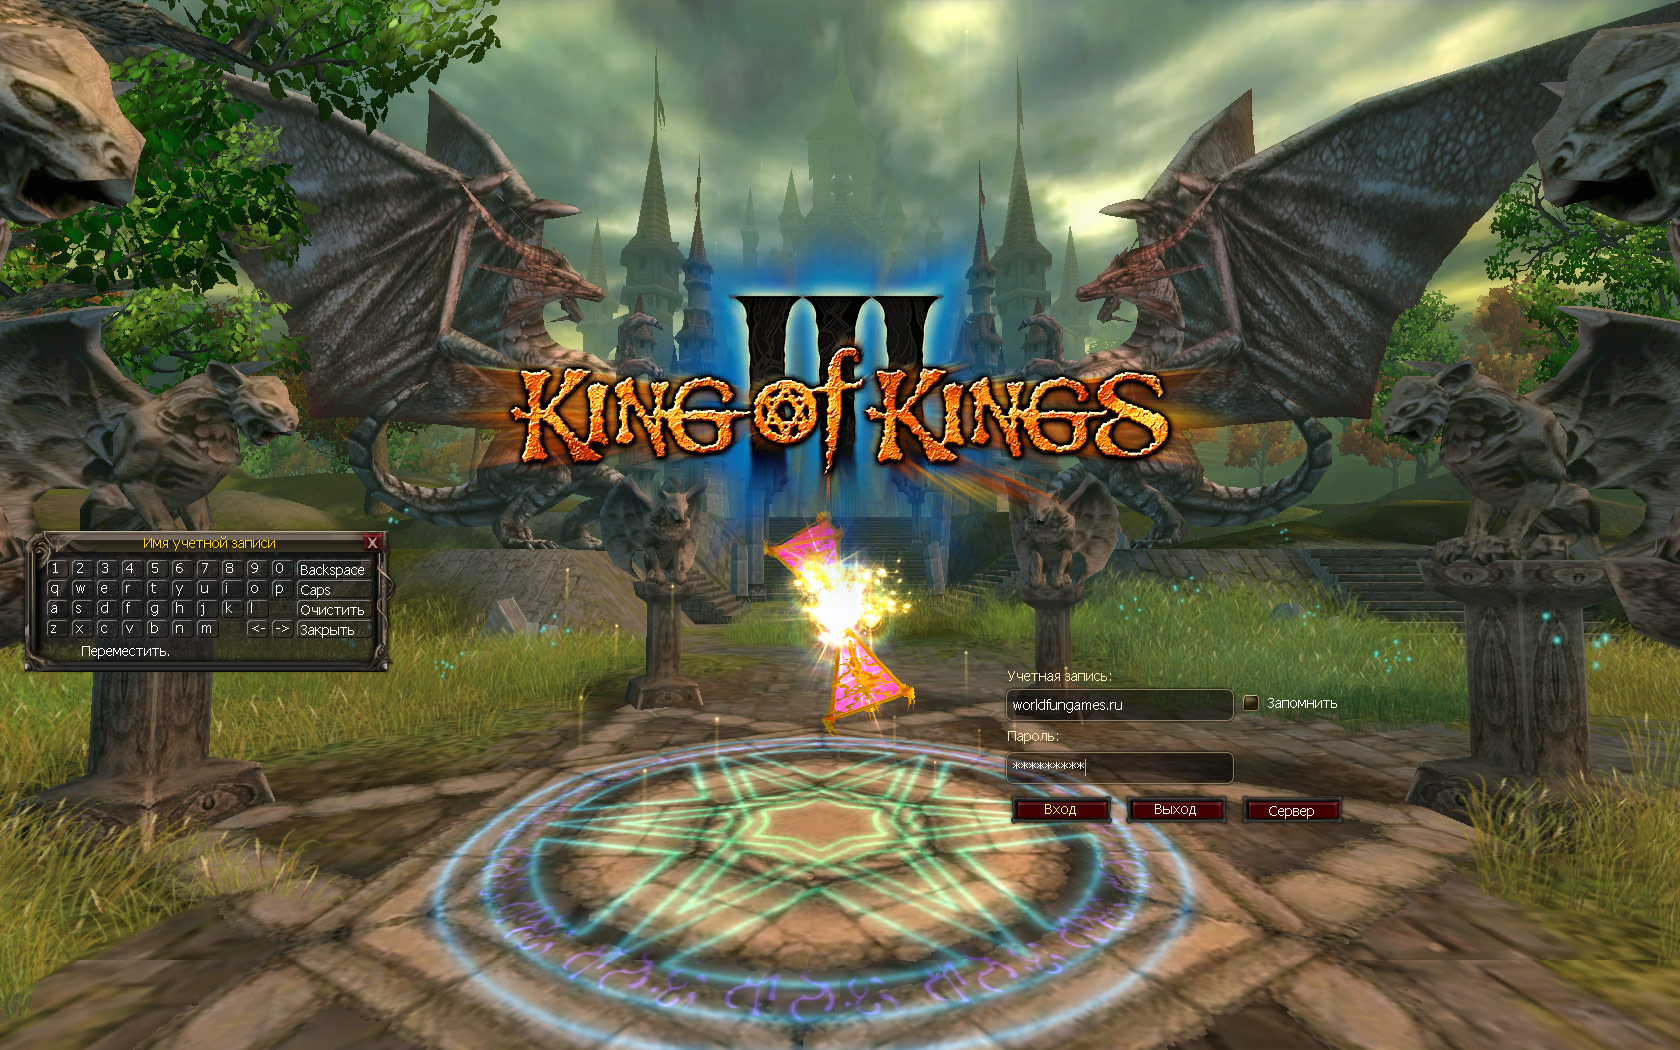 worldfungamesru_king-of-kings-3_2